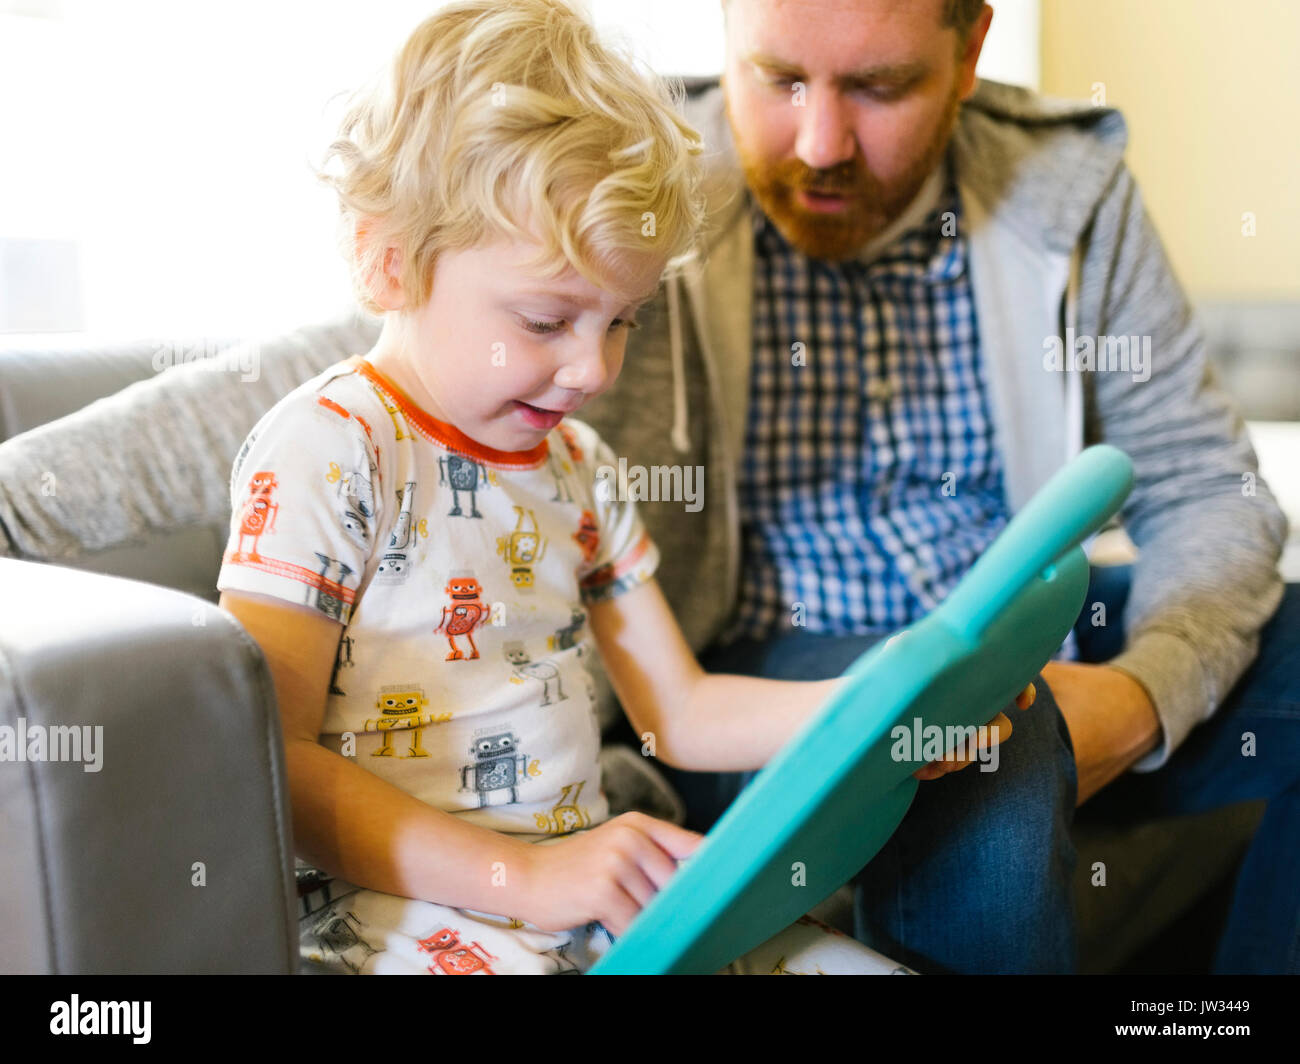 Father and son (4-5) playing with electronic toy - Stock Image